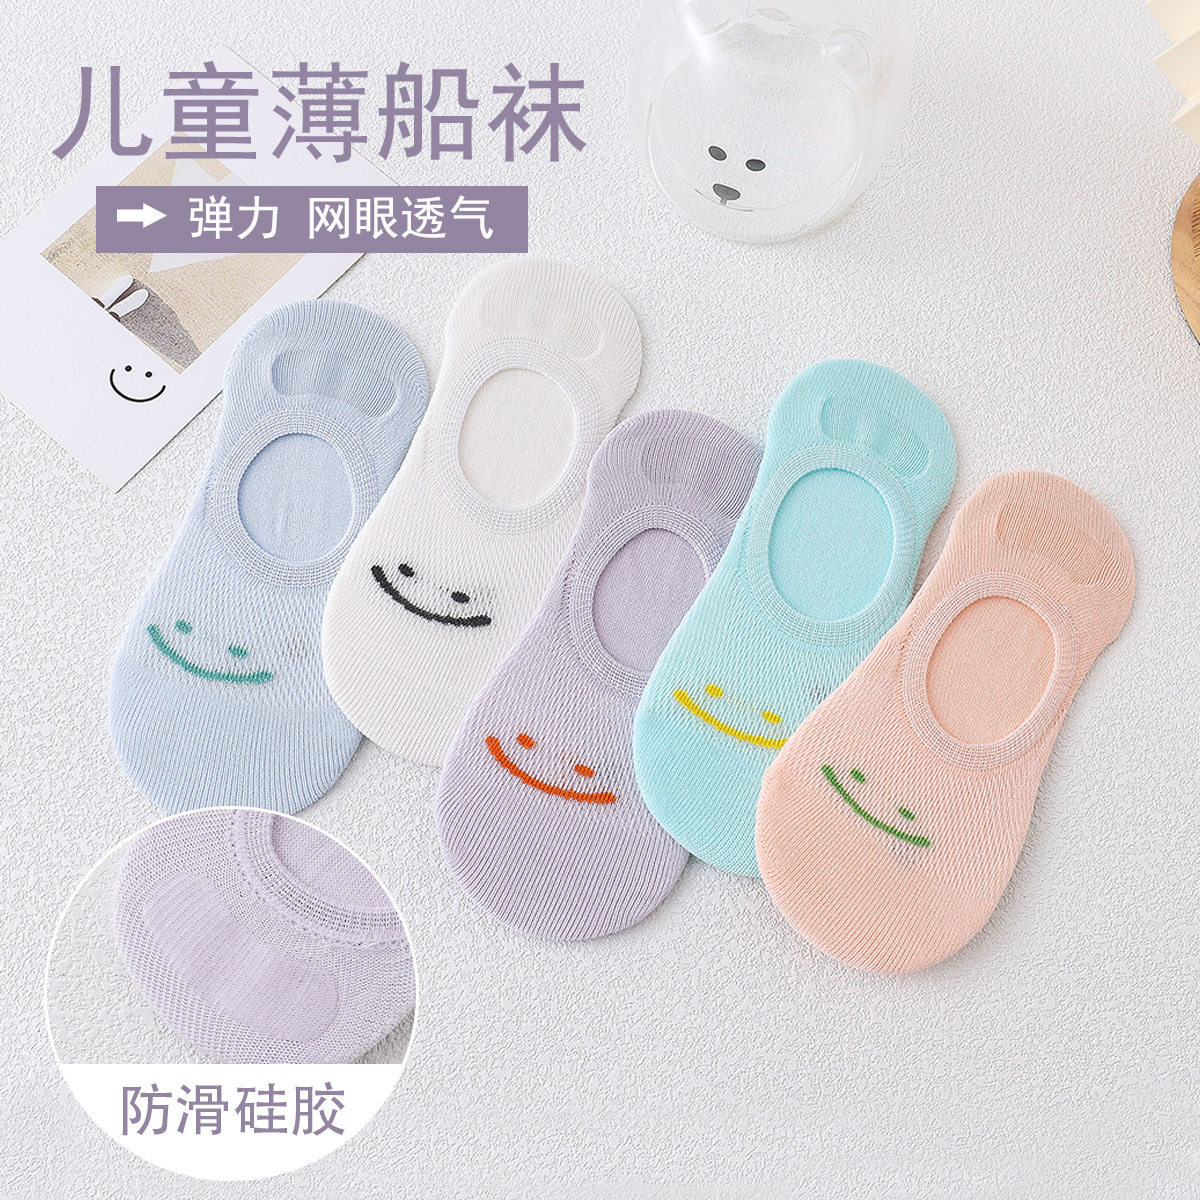 Thin Cute Print Breathable No-Show Cotton Socks for Playful Children